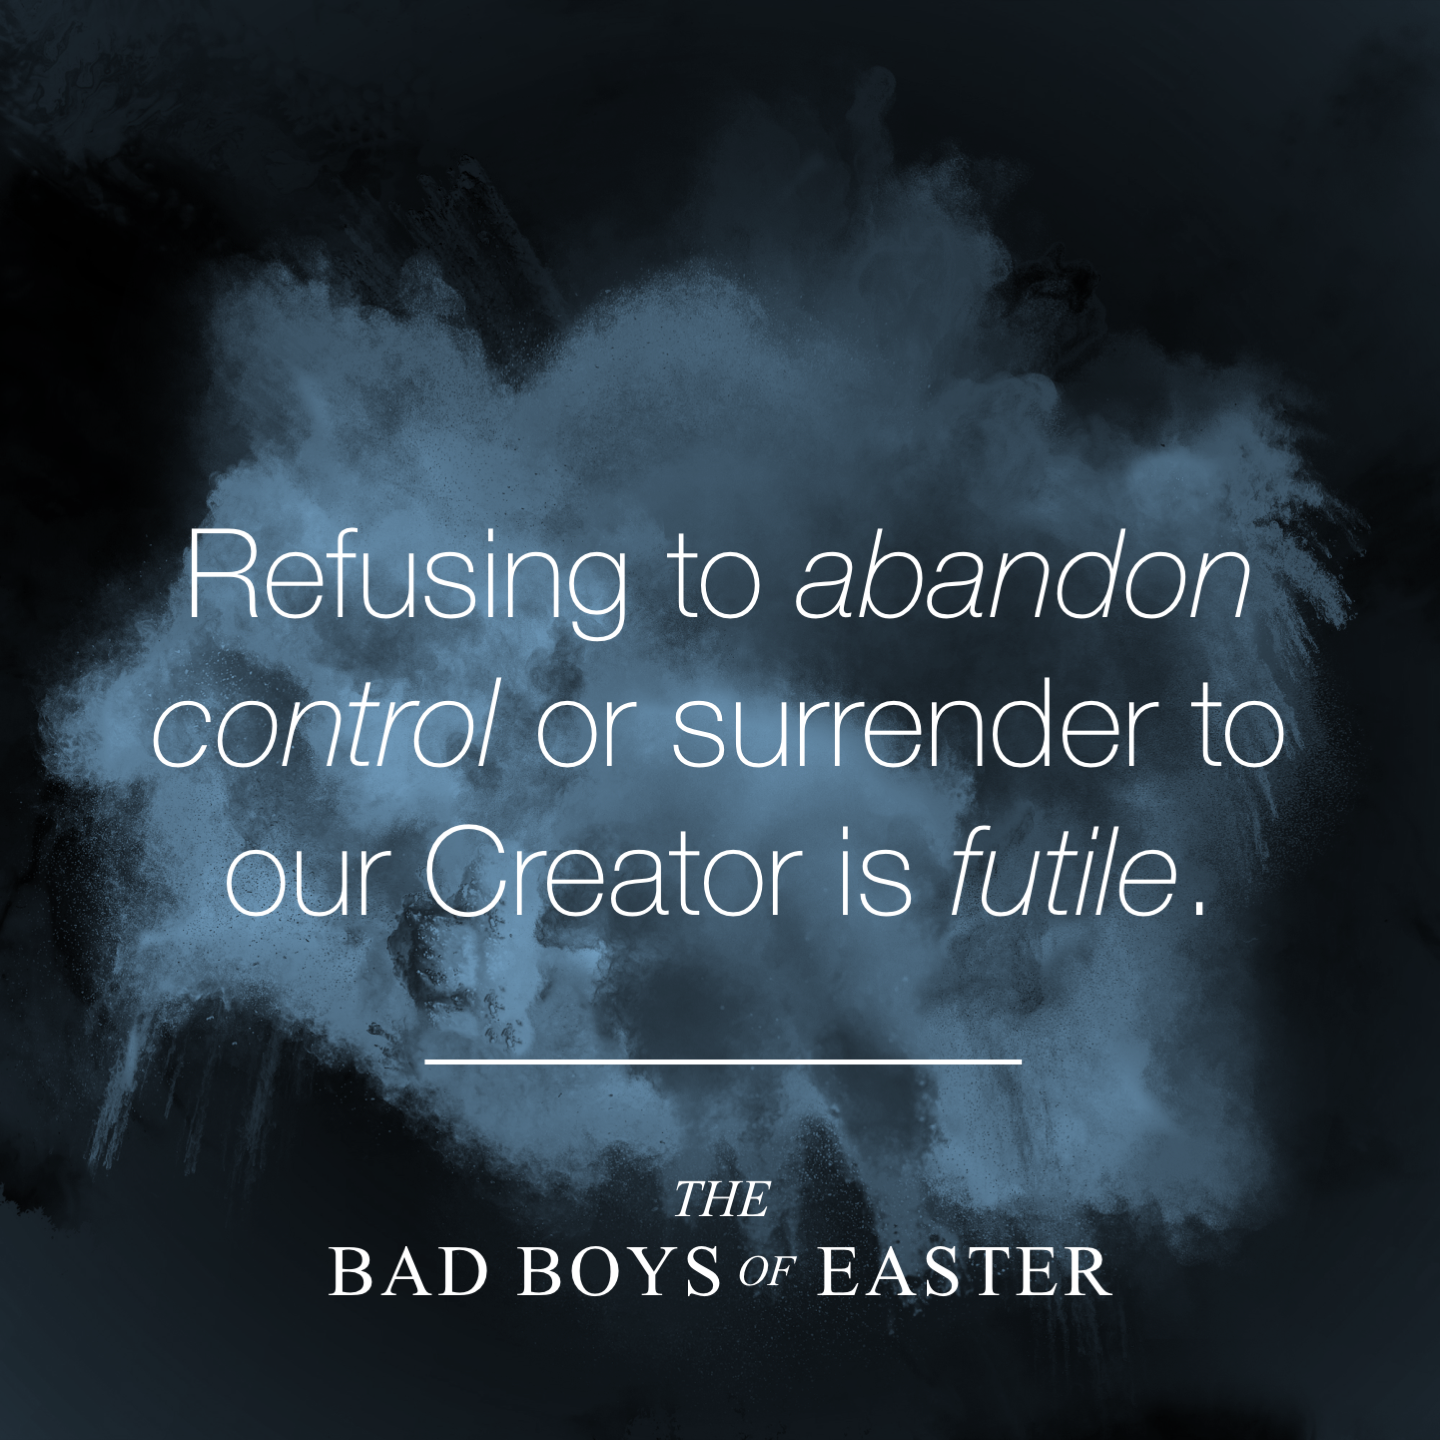 The Bad Boys of Easter - Summary #1